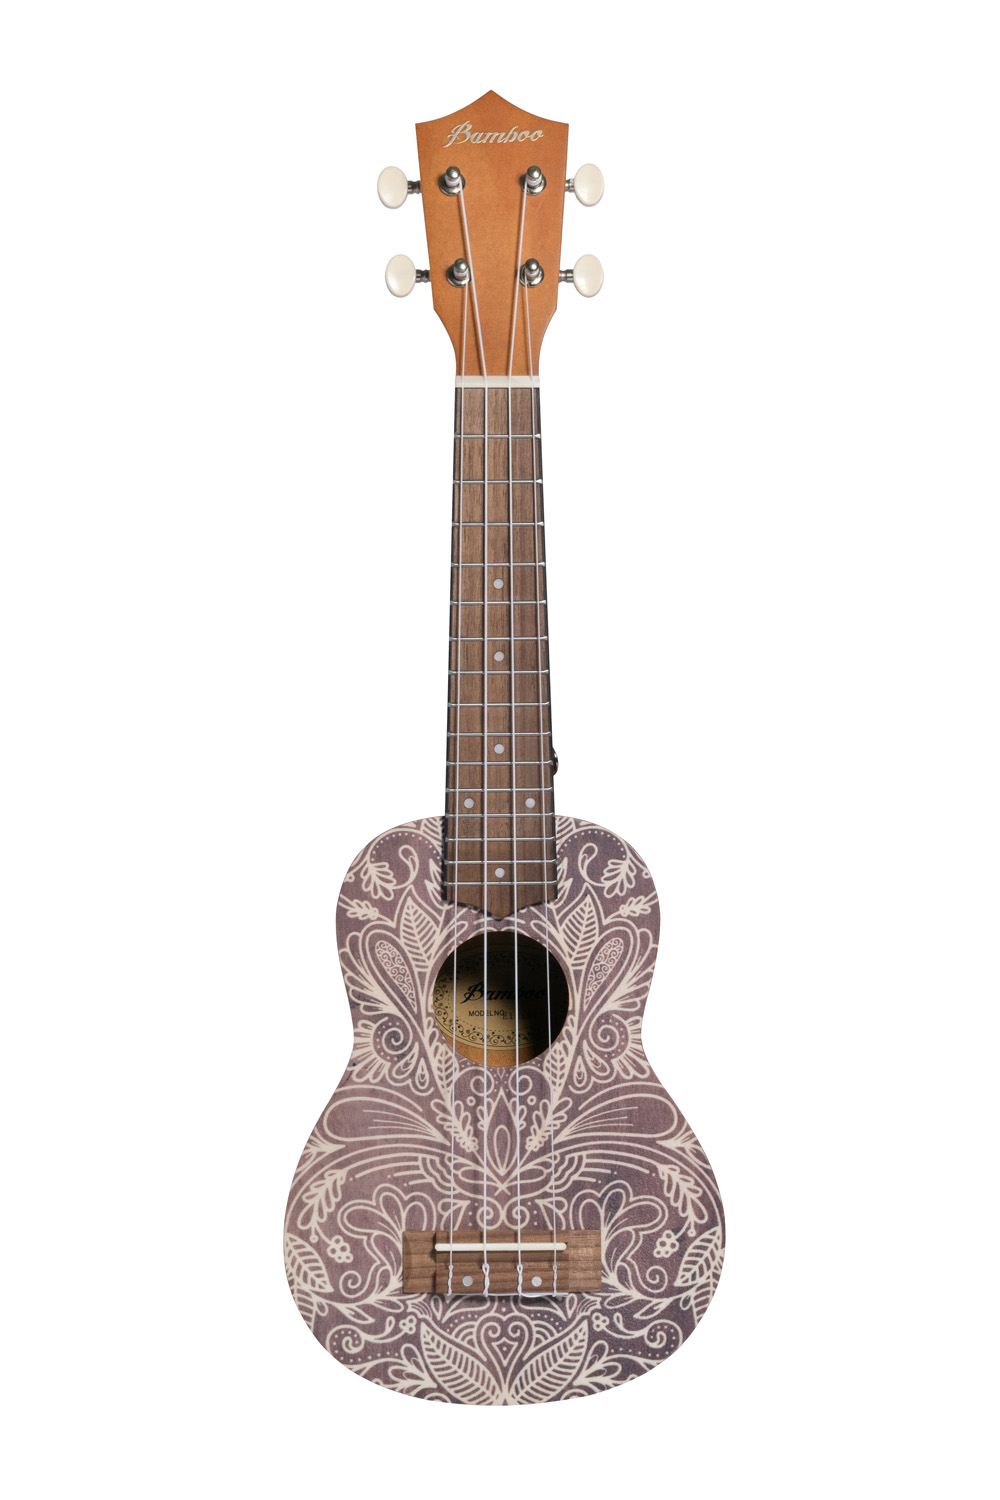 BAMBOO Elixir Concert Ukulele Dreams Series Acoustic | For Beginners and Professionals | Sapele & Walnut | With Gig Bag (New Generation)